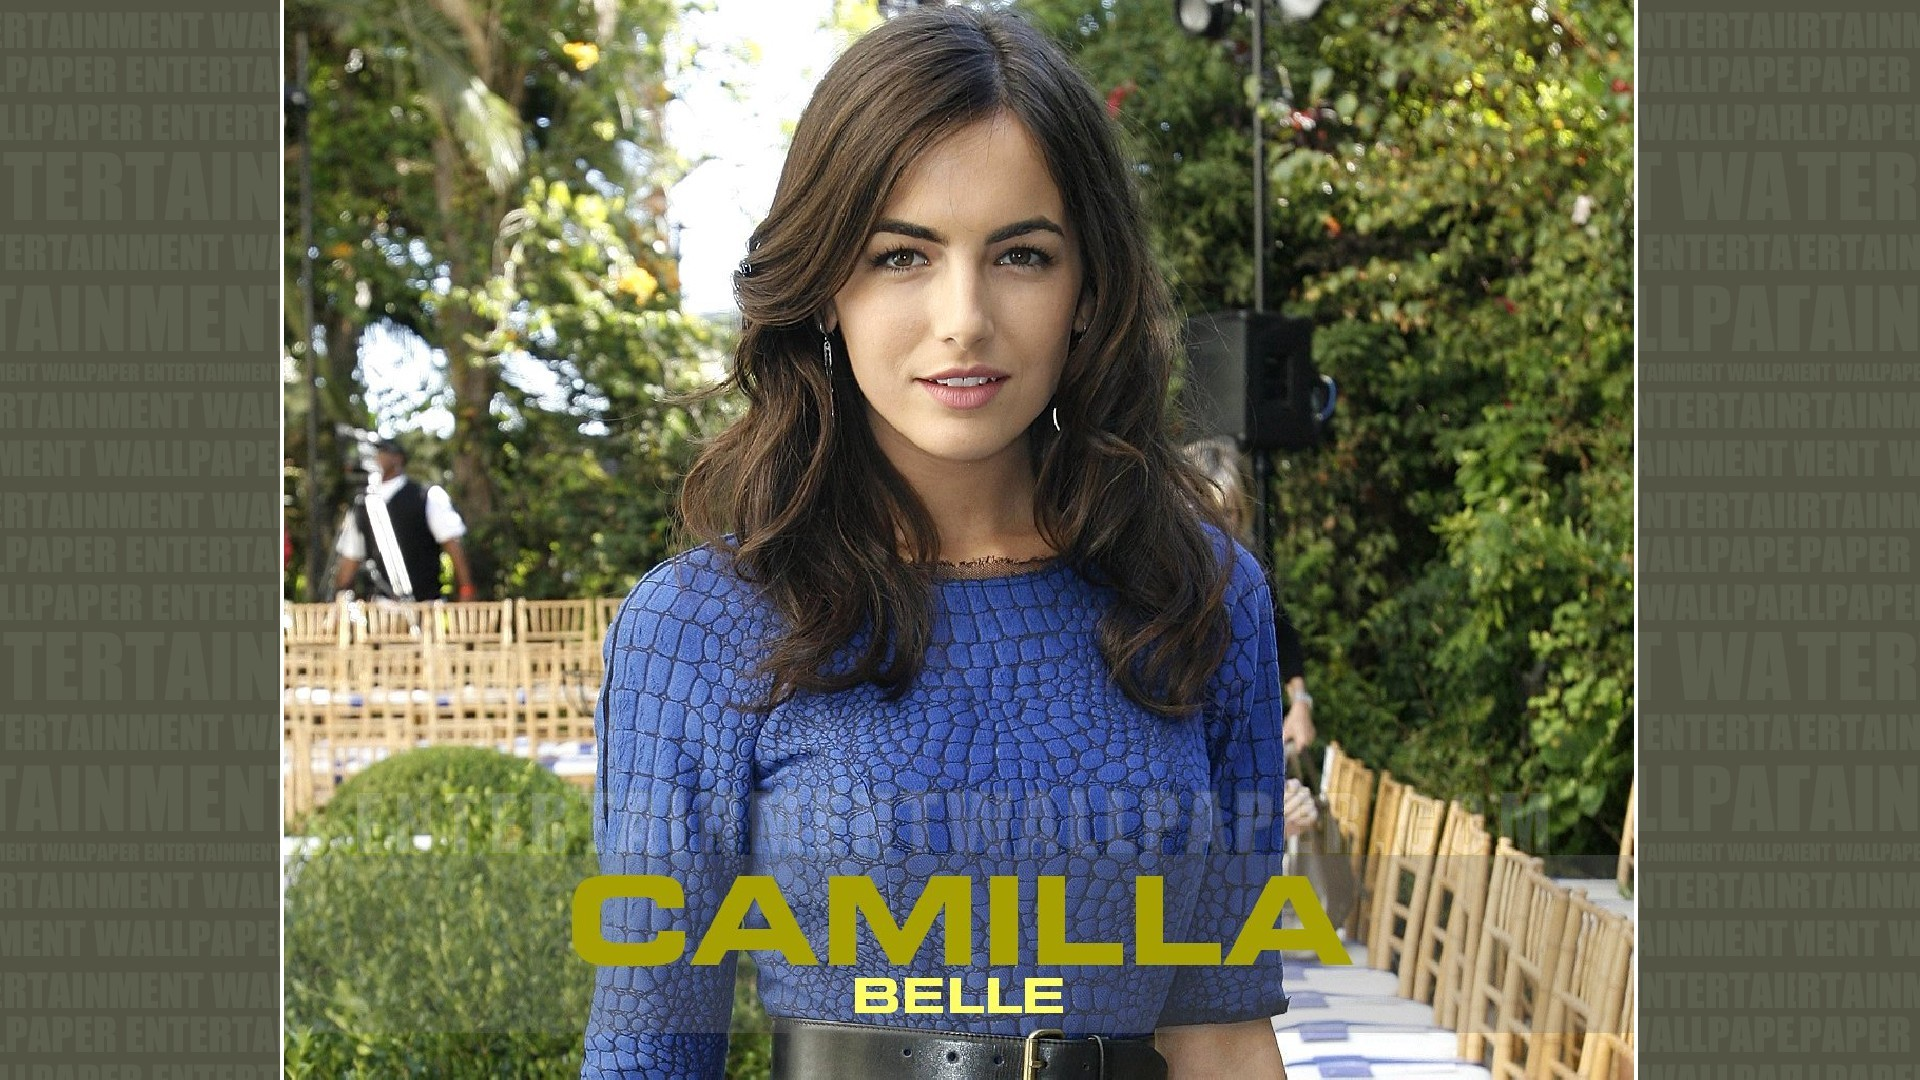 1920x1080 Camilla Belle Wallpaper - Original size, download now.